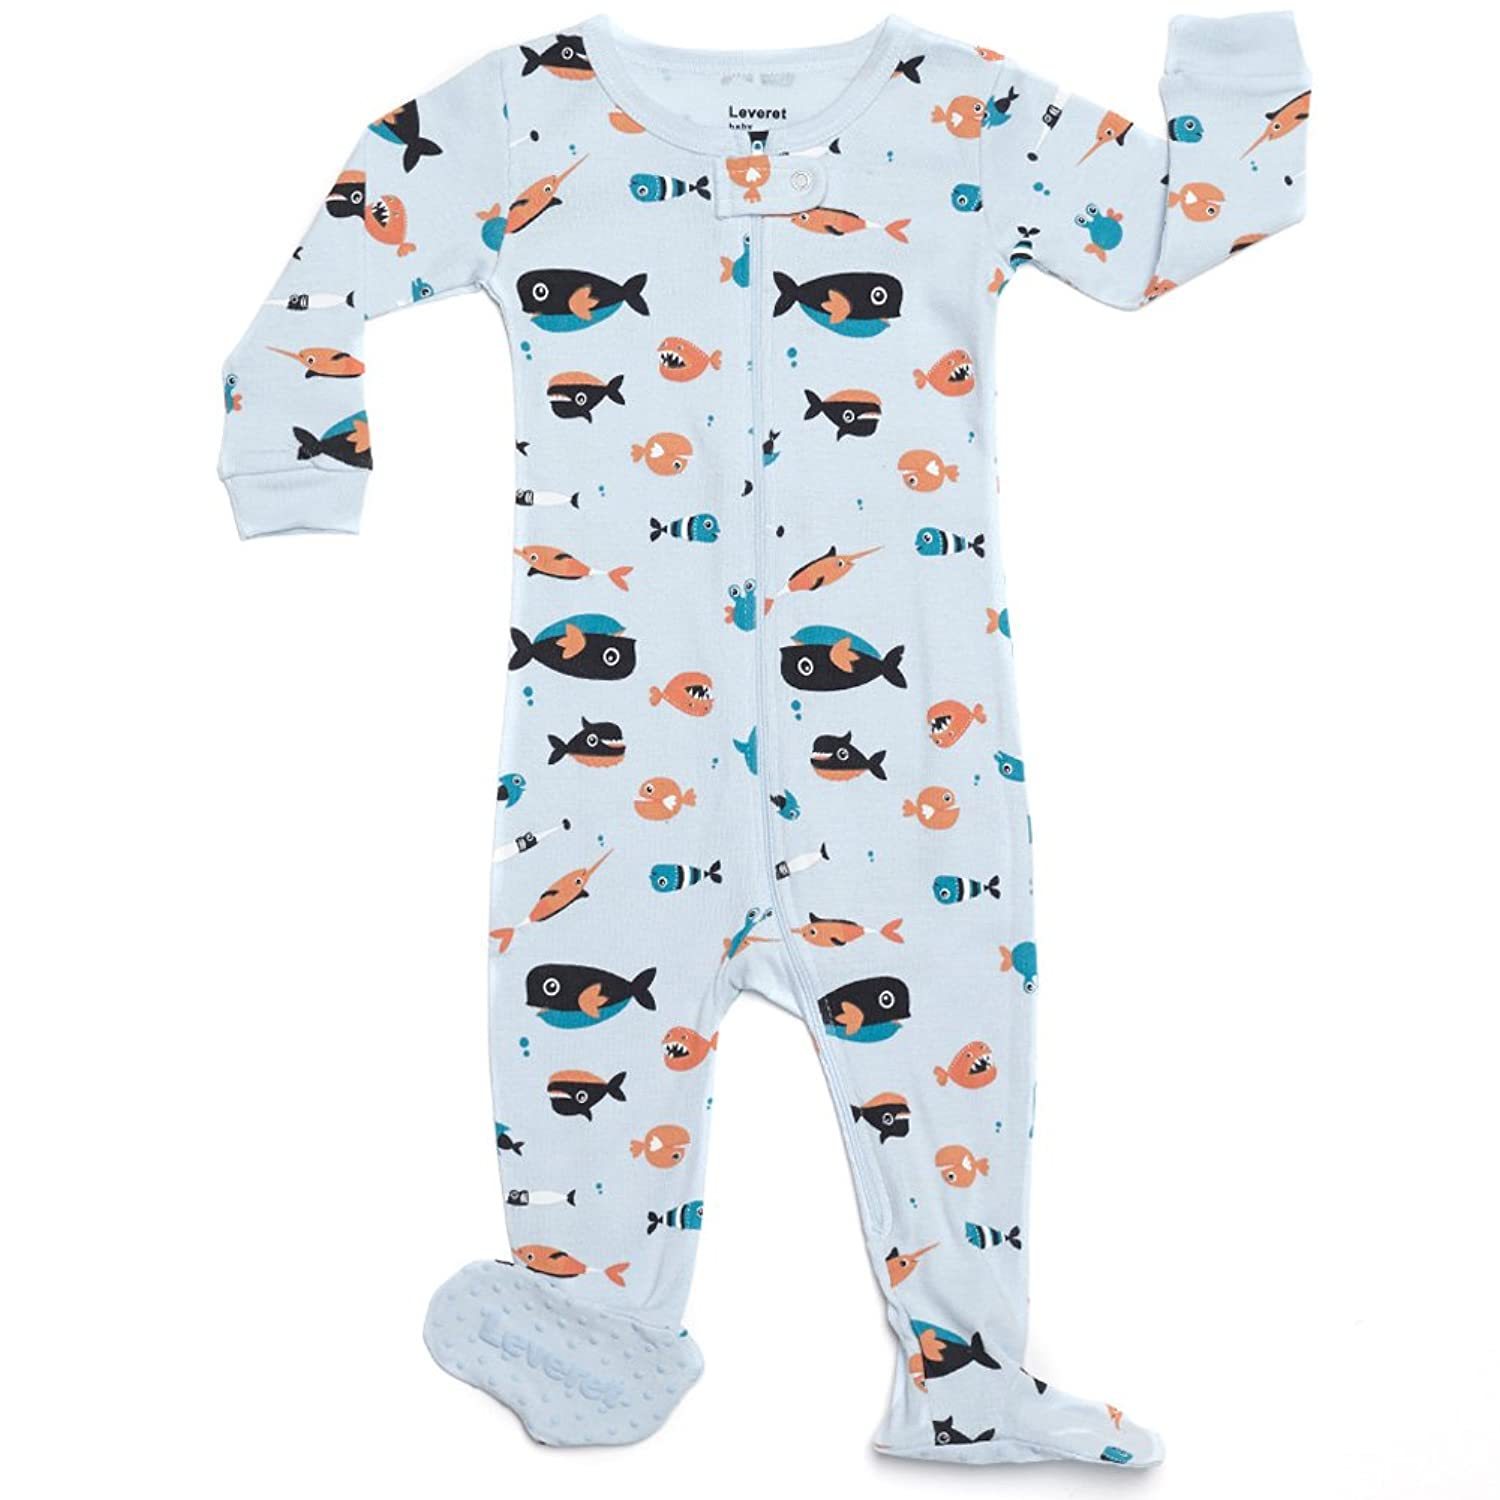 Two long-sleeve footed sleep-and-play suits in baby-soft cotton. Simple Joys by Carter's Baby 2-Pack Fleece Footed Sleep and Play. by Simple Joys by Carter's. $ $ 15 99 Prime. Exclusively for Prime Members. Some sizes/colors are Prime eligible. out of 5 stars Product Features.